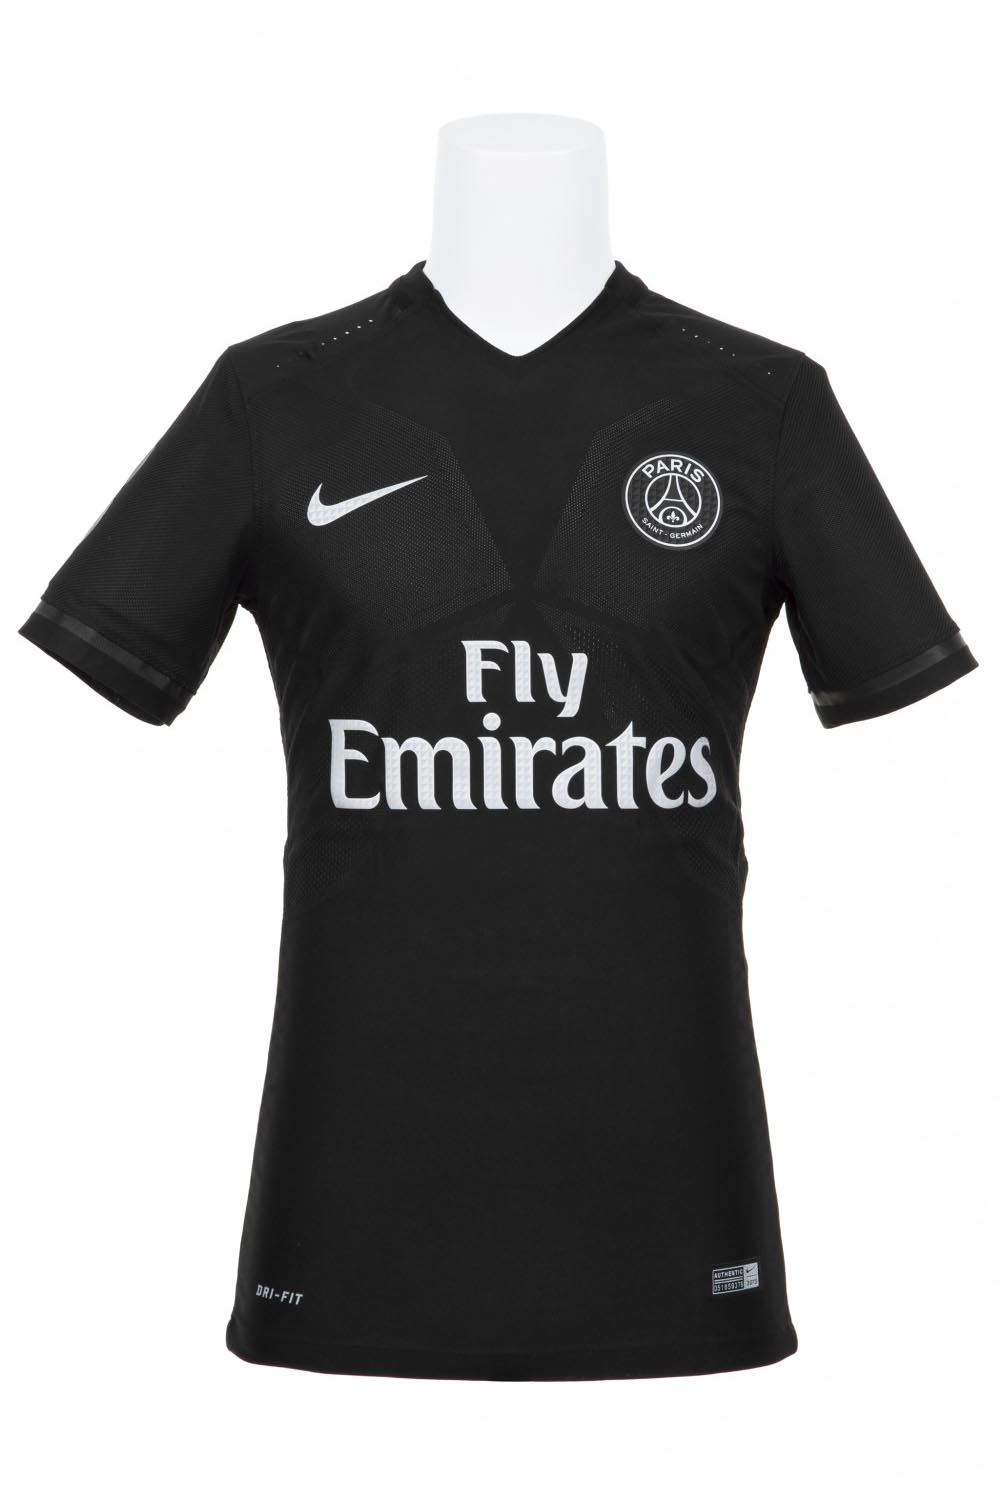 psg collecter set_0004_Layer 1.jpg